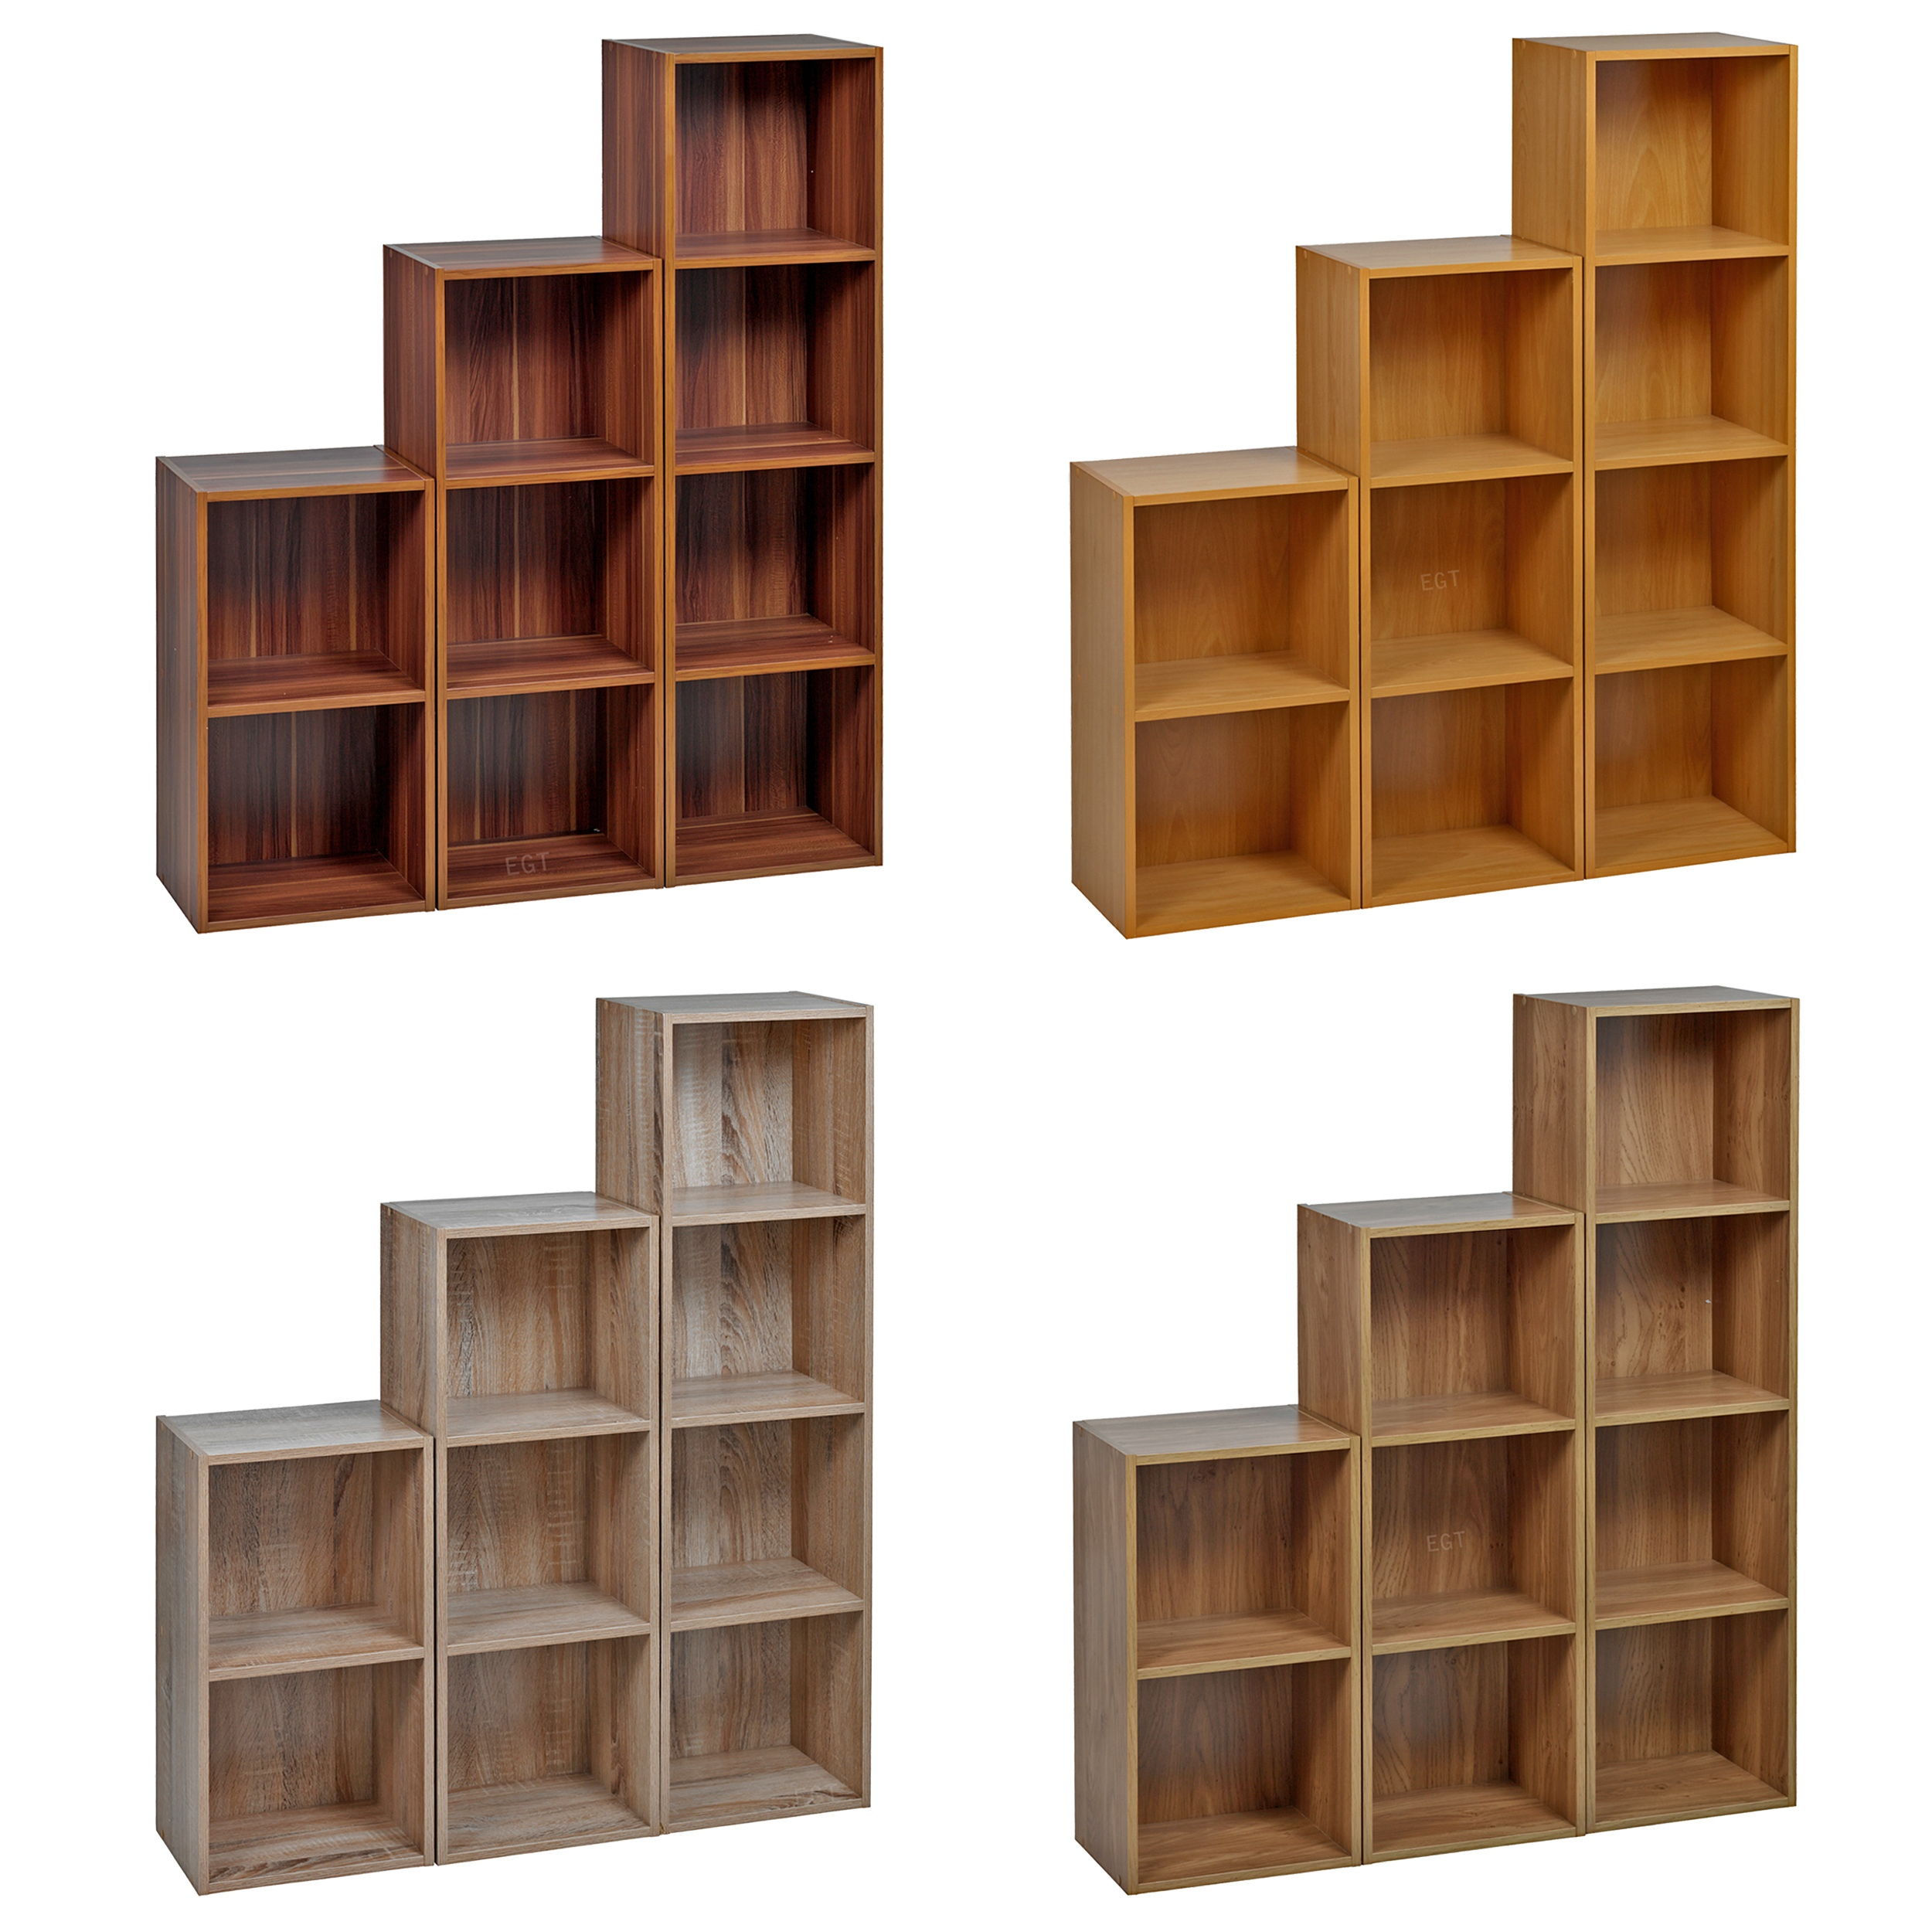 1 2 3 4 tier wooden bookcase shelving display storage for Ikea wooden bookshelf